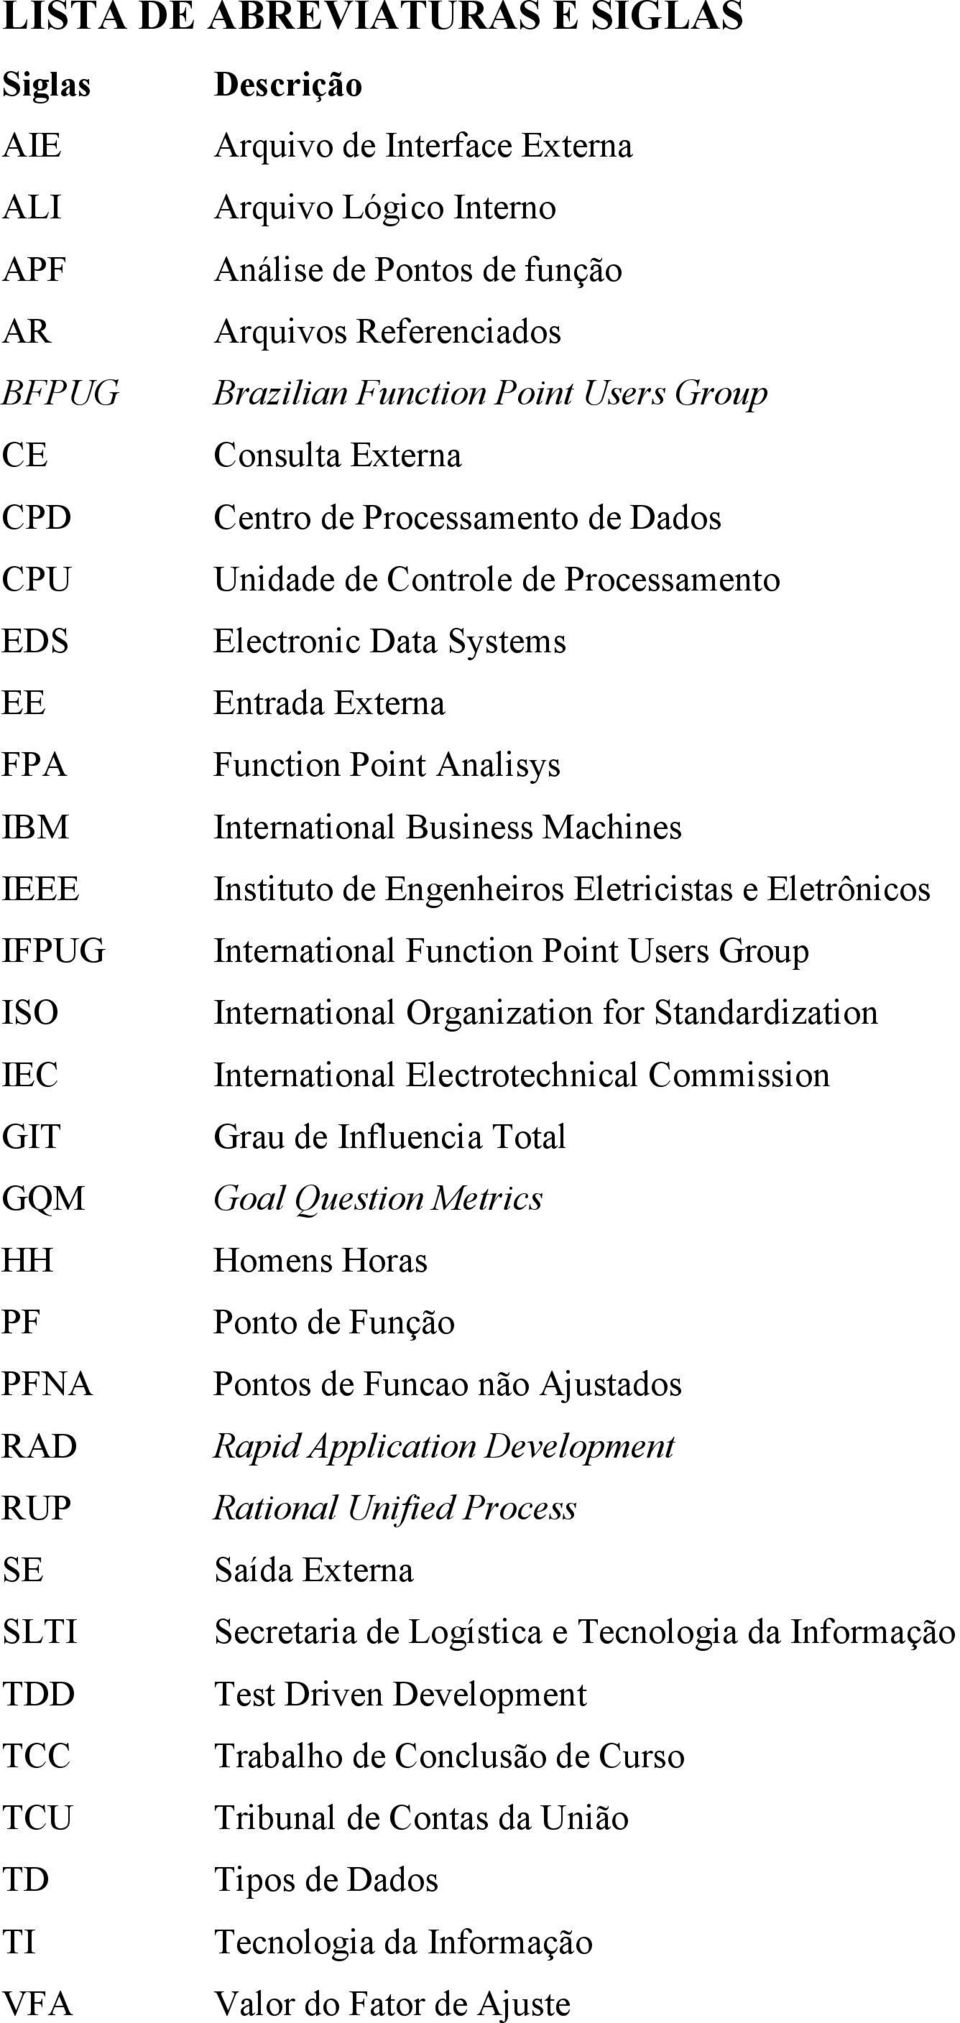 International Business Machines IEEE Instituto de Engenheiros Eletricistas e Eletrônicos IFPUG International Function Point Users Group ISO International Organization for Standardization IEC